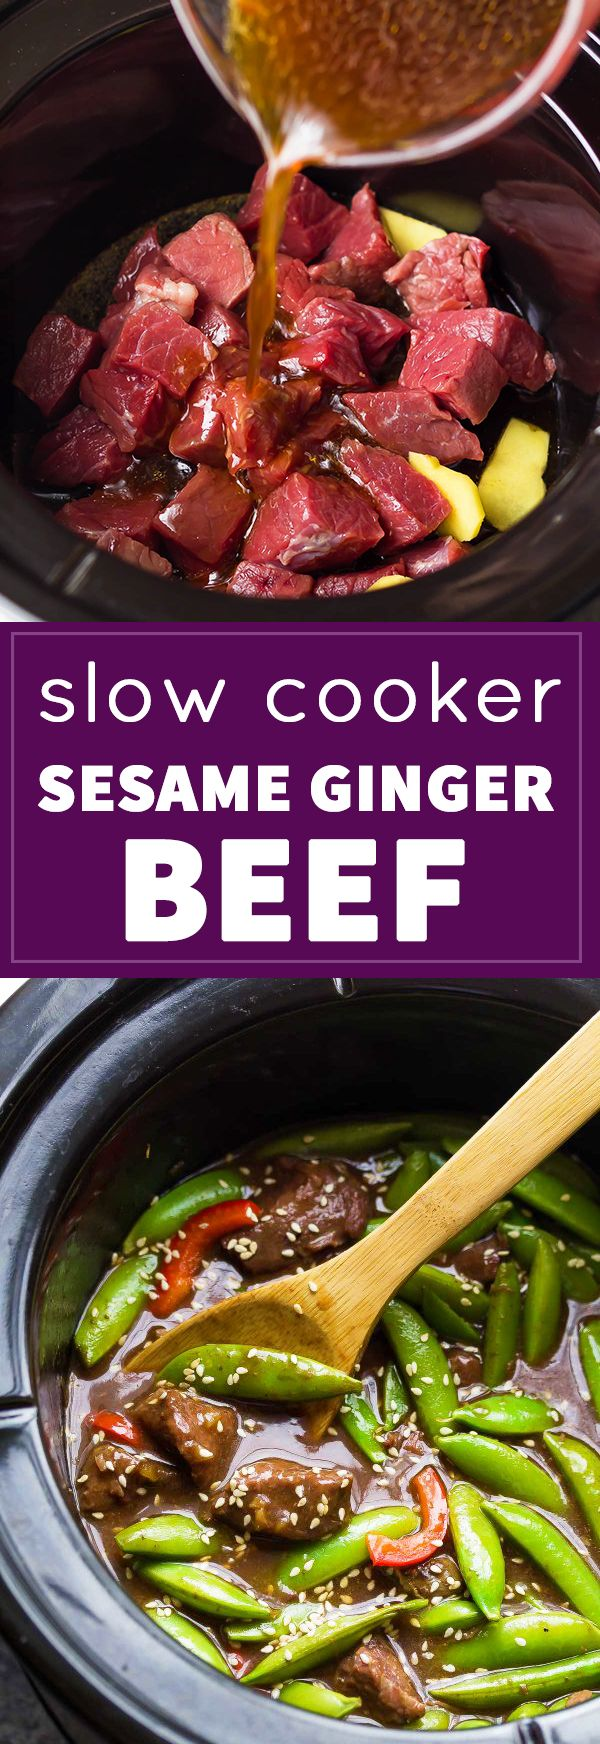 Just a few simple ingredients to make this Slow Cooker Sesame Ginger Beef with Snap Peas!